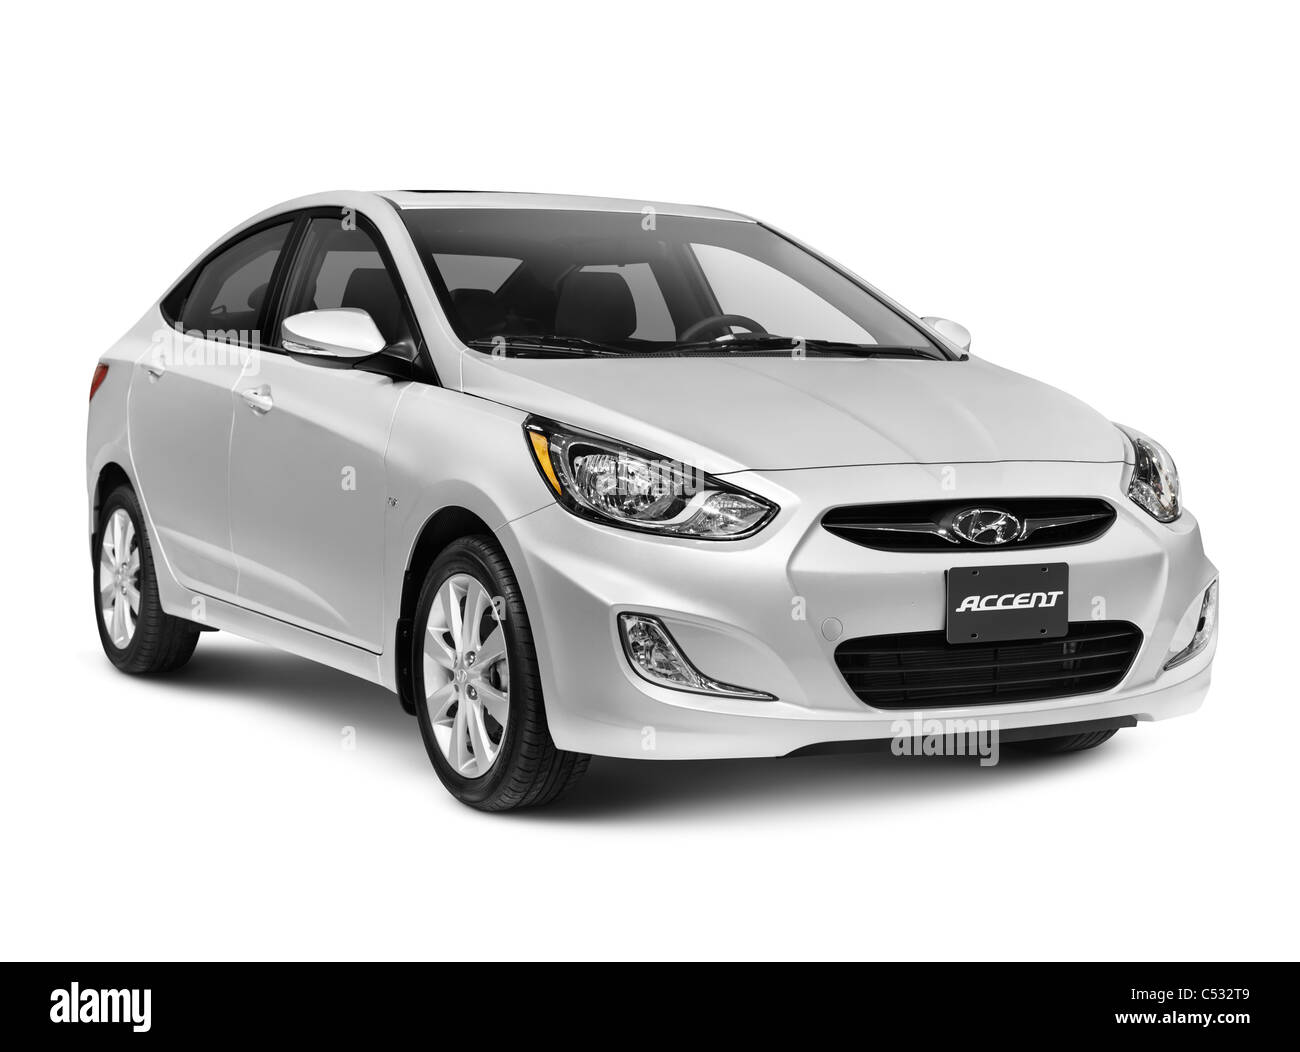 hyundai accent high resolution stock photography and images alamy https www alamy com stock photo silver 2012 hyundai accent 4 door sedan isolated on white background 37562121 html